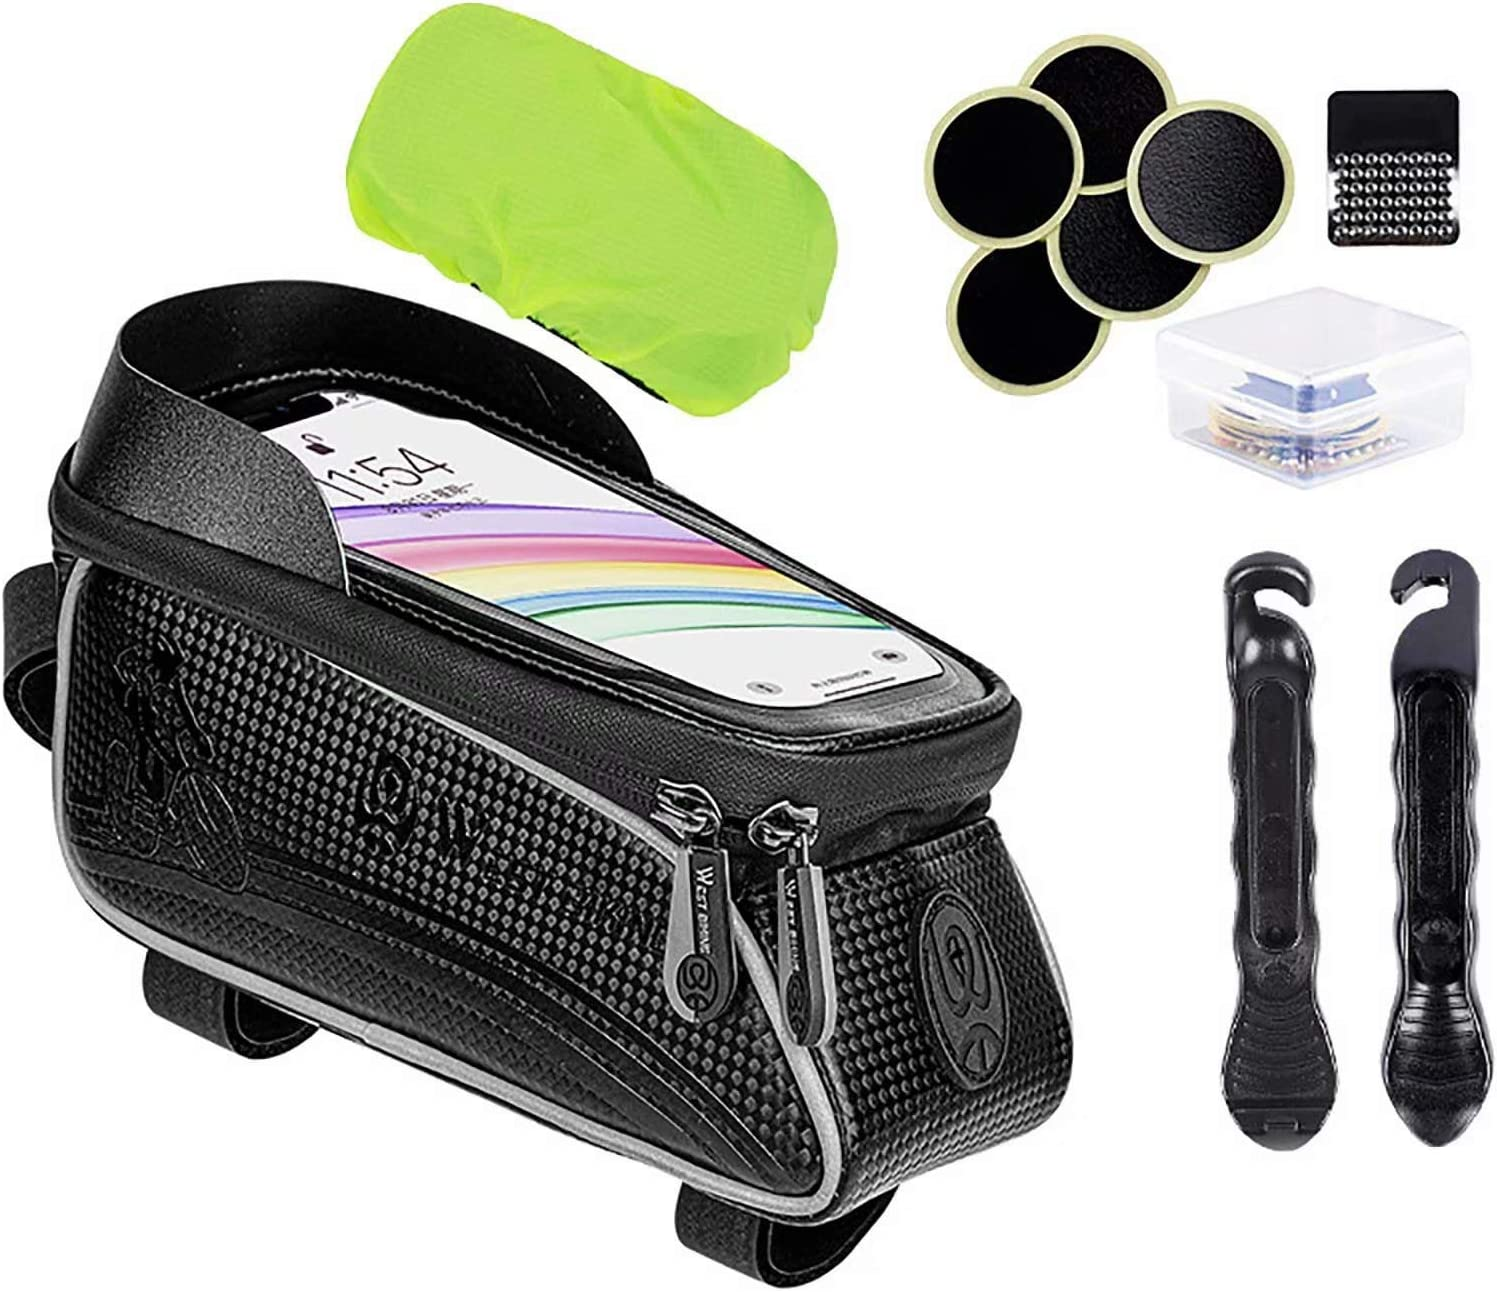 CHENSQ Bicycle Multifunctional Puncture Lowest price challenge Max 68% OFF Mult kit Repair